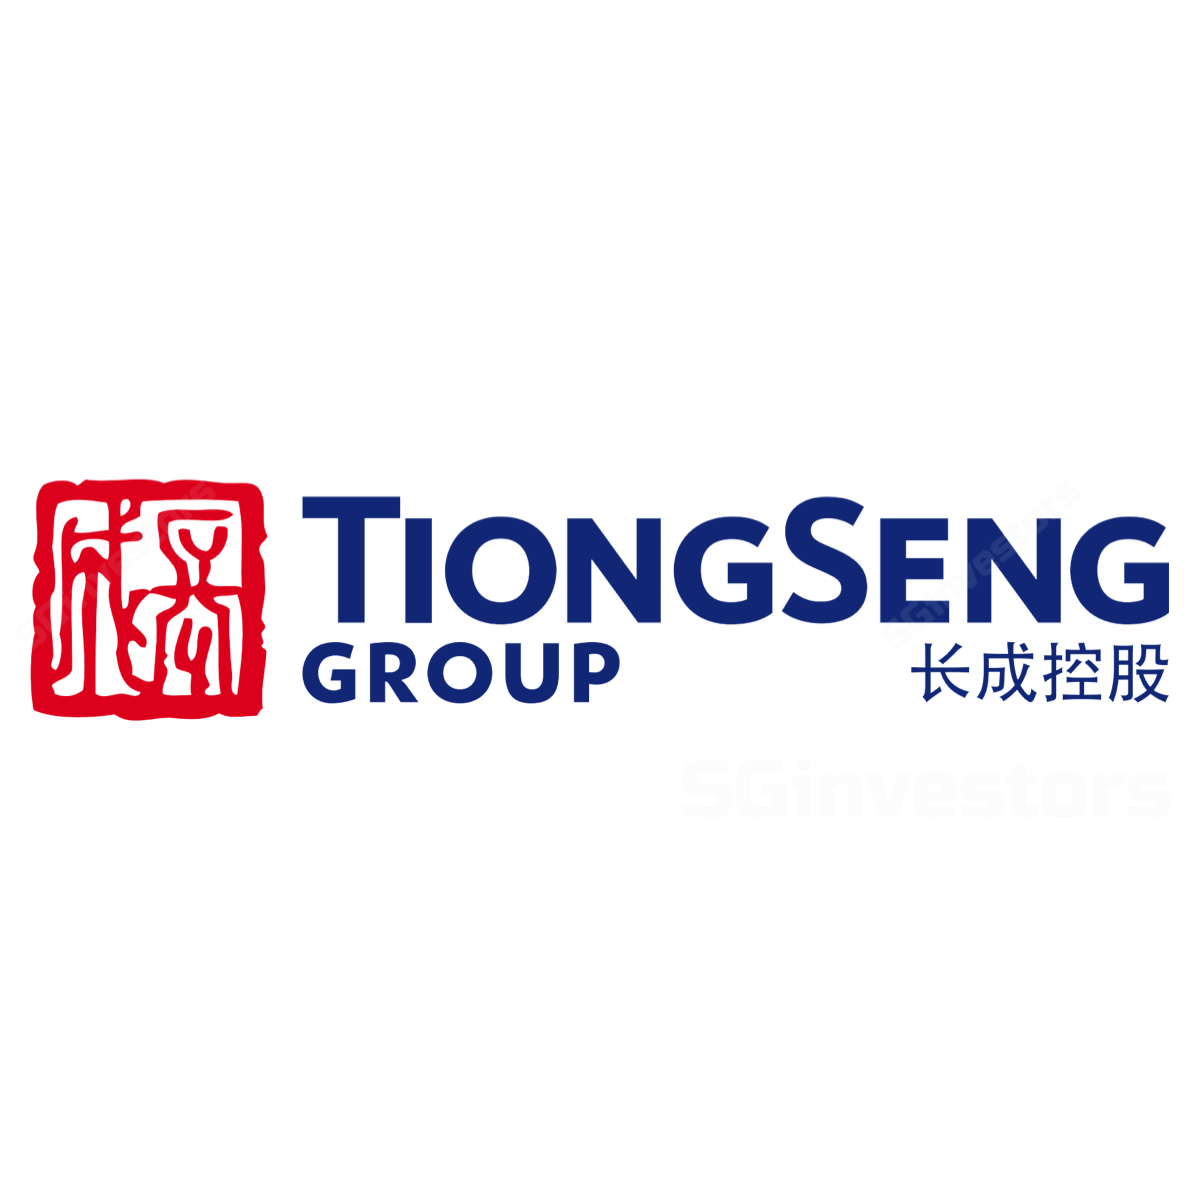 Tiong Seng Holdings Ltd - CIMB Research 2018-04-09: Early Adopter Of Prefab Technology